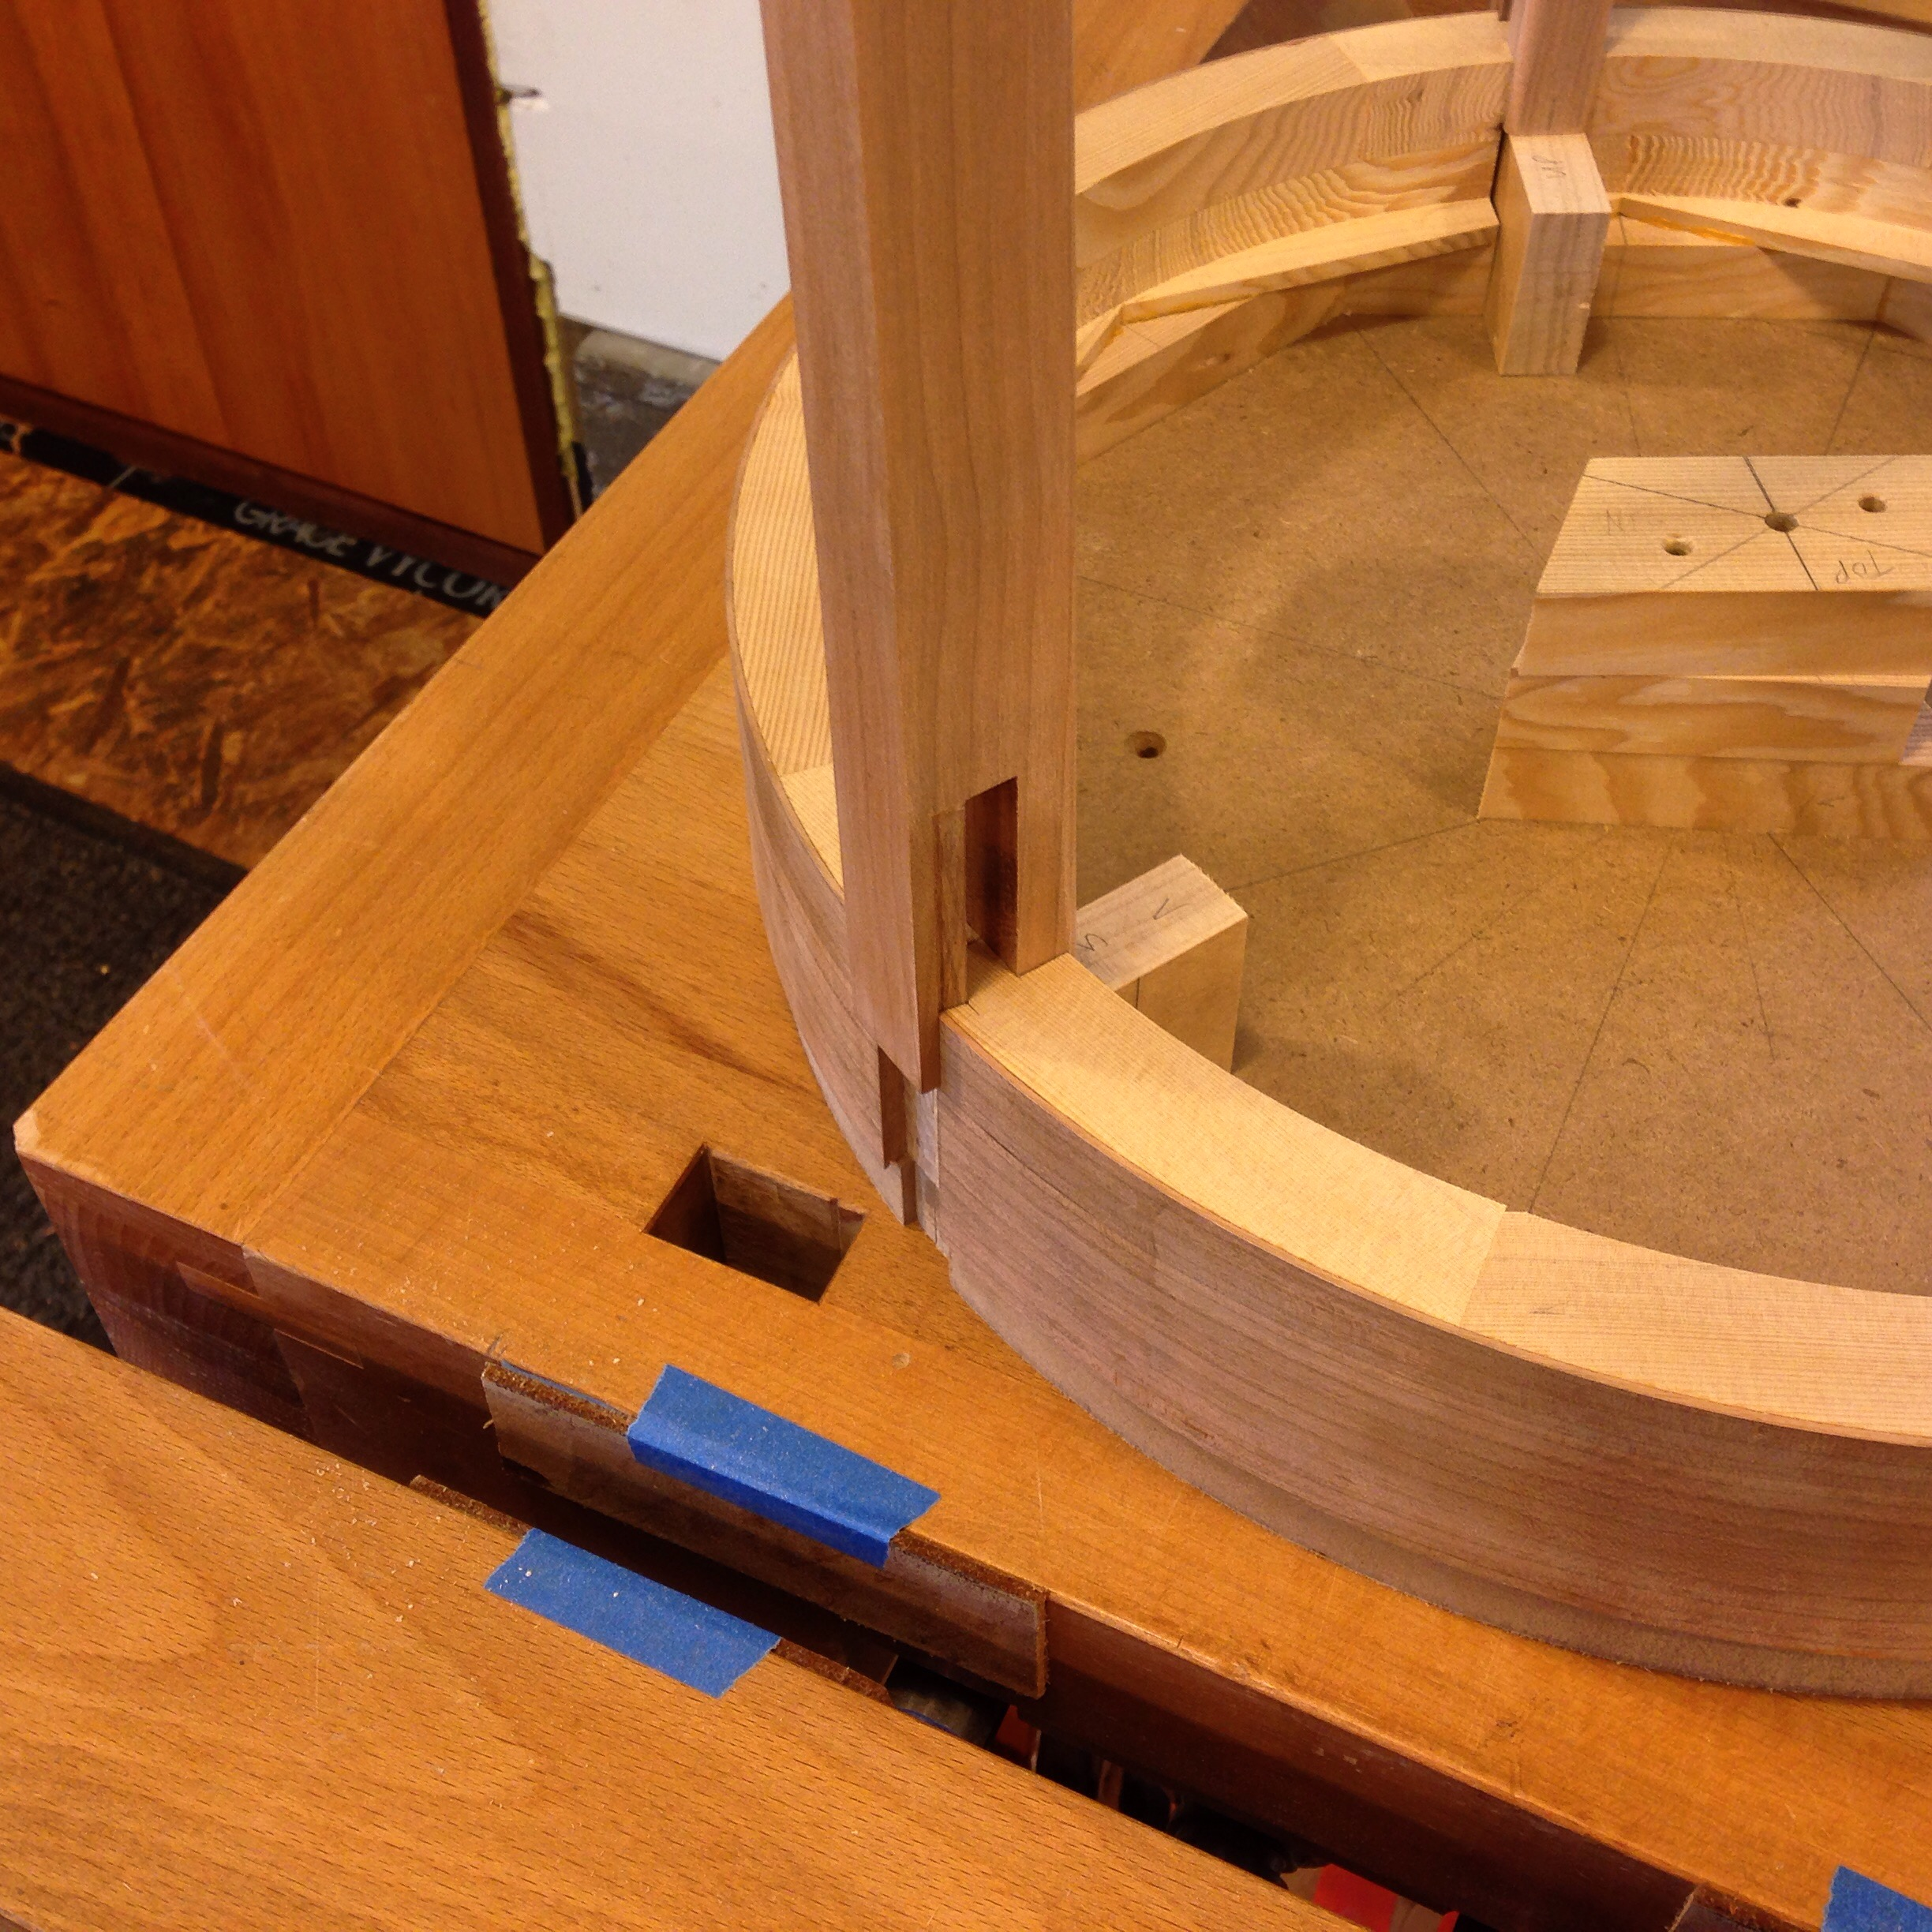 table leg joinery to apron.JPG